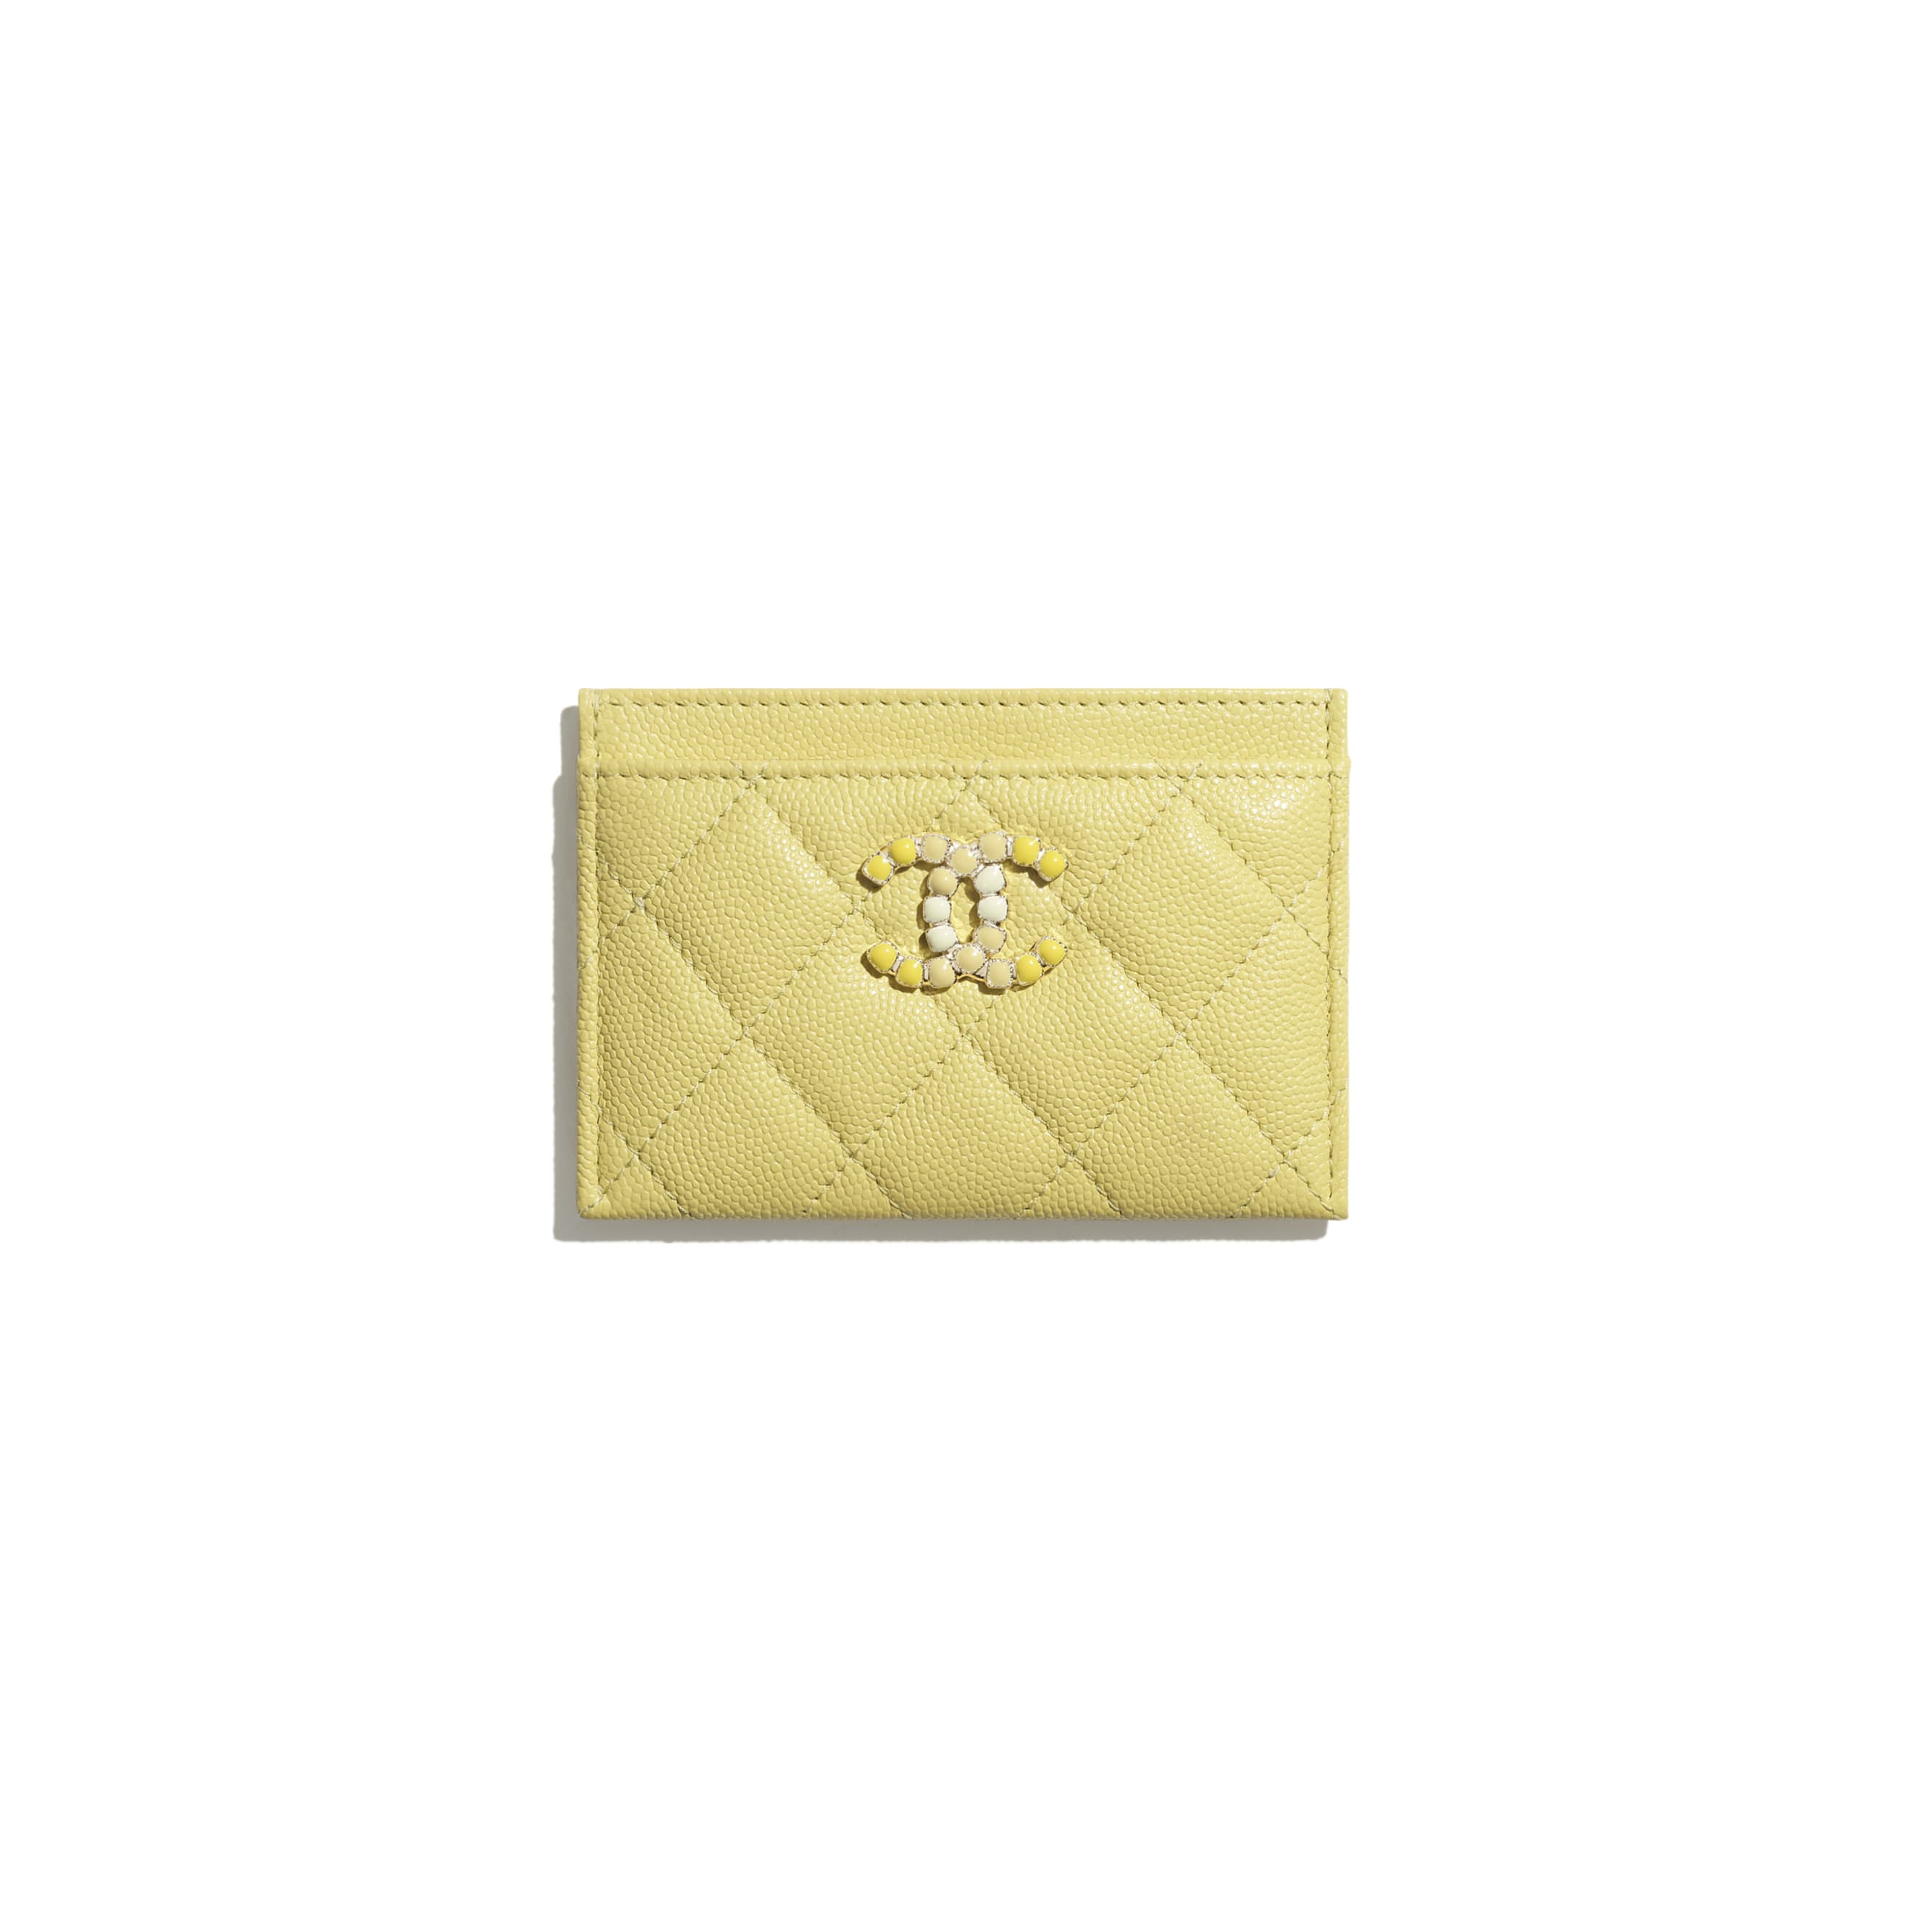 Card Holder - Yellow - Grained Calfskin & Laquered Gold-Tone Metal - CHANEL - Default view - see standard sized version